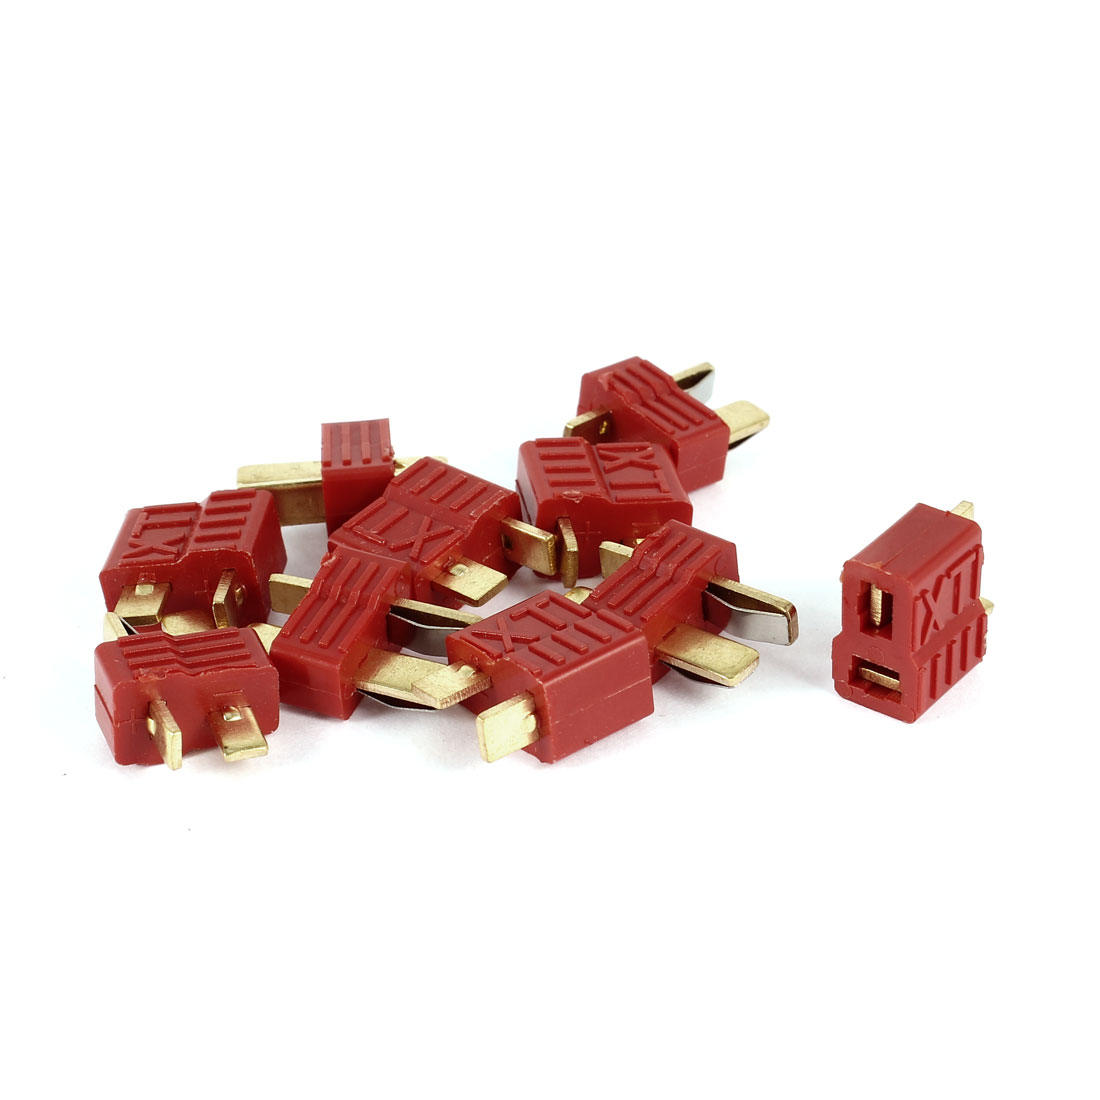 RC Model Toy Battery Repalcing Parts T Male to Female M/F Connector Red 5 Pairs